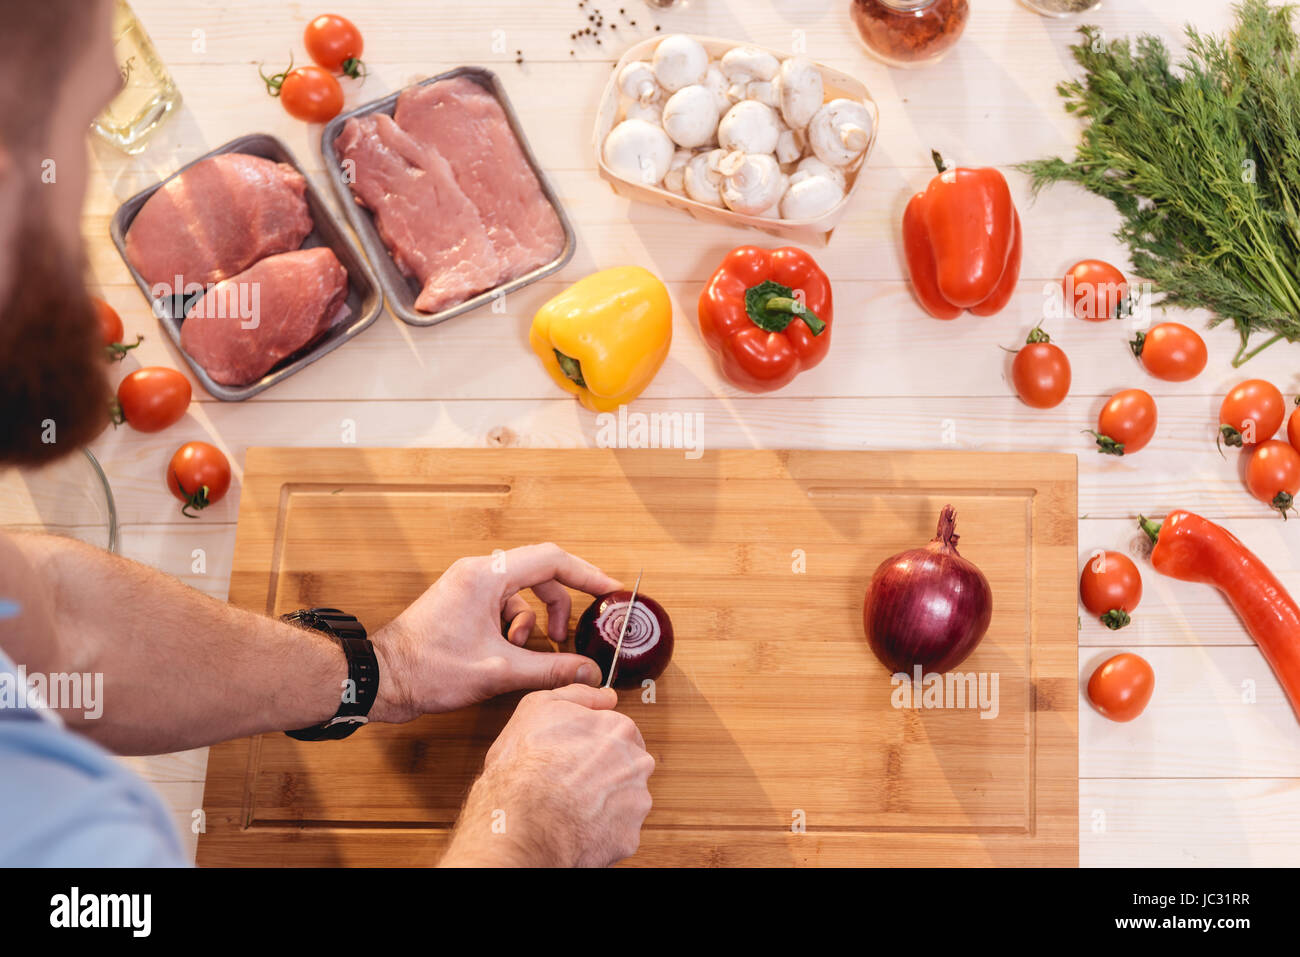 Top view of man cutting fresh onion at wooden cutting board for barbecue - Stock Image